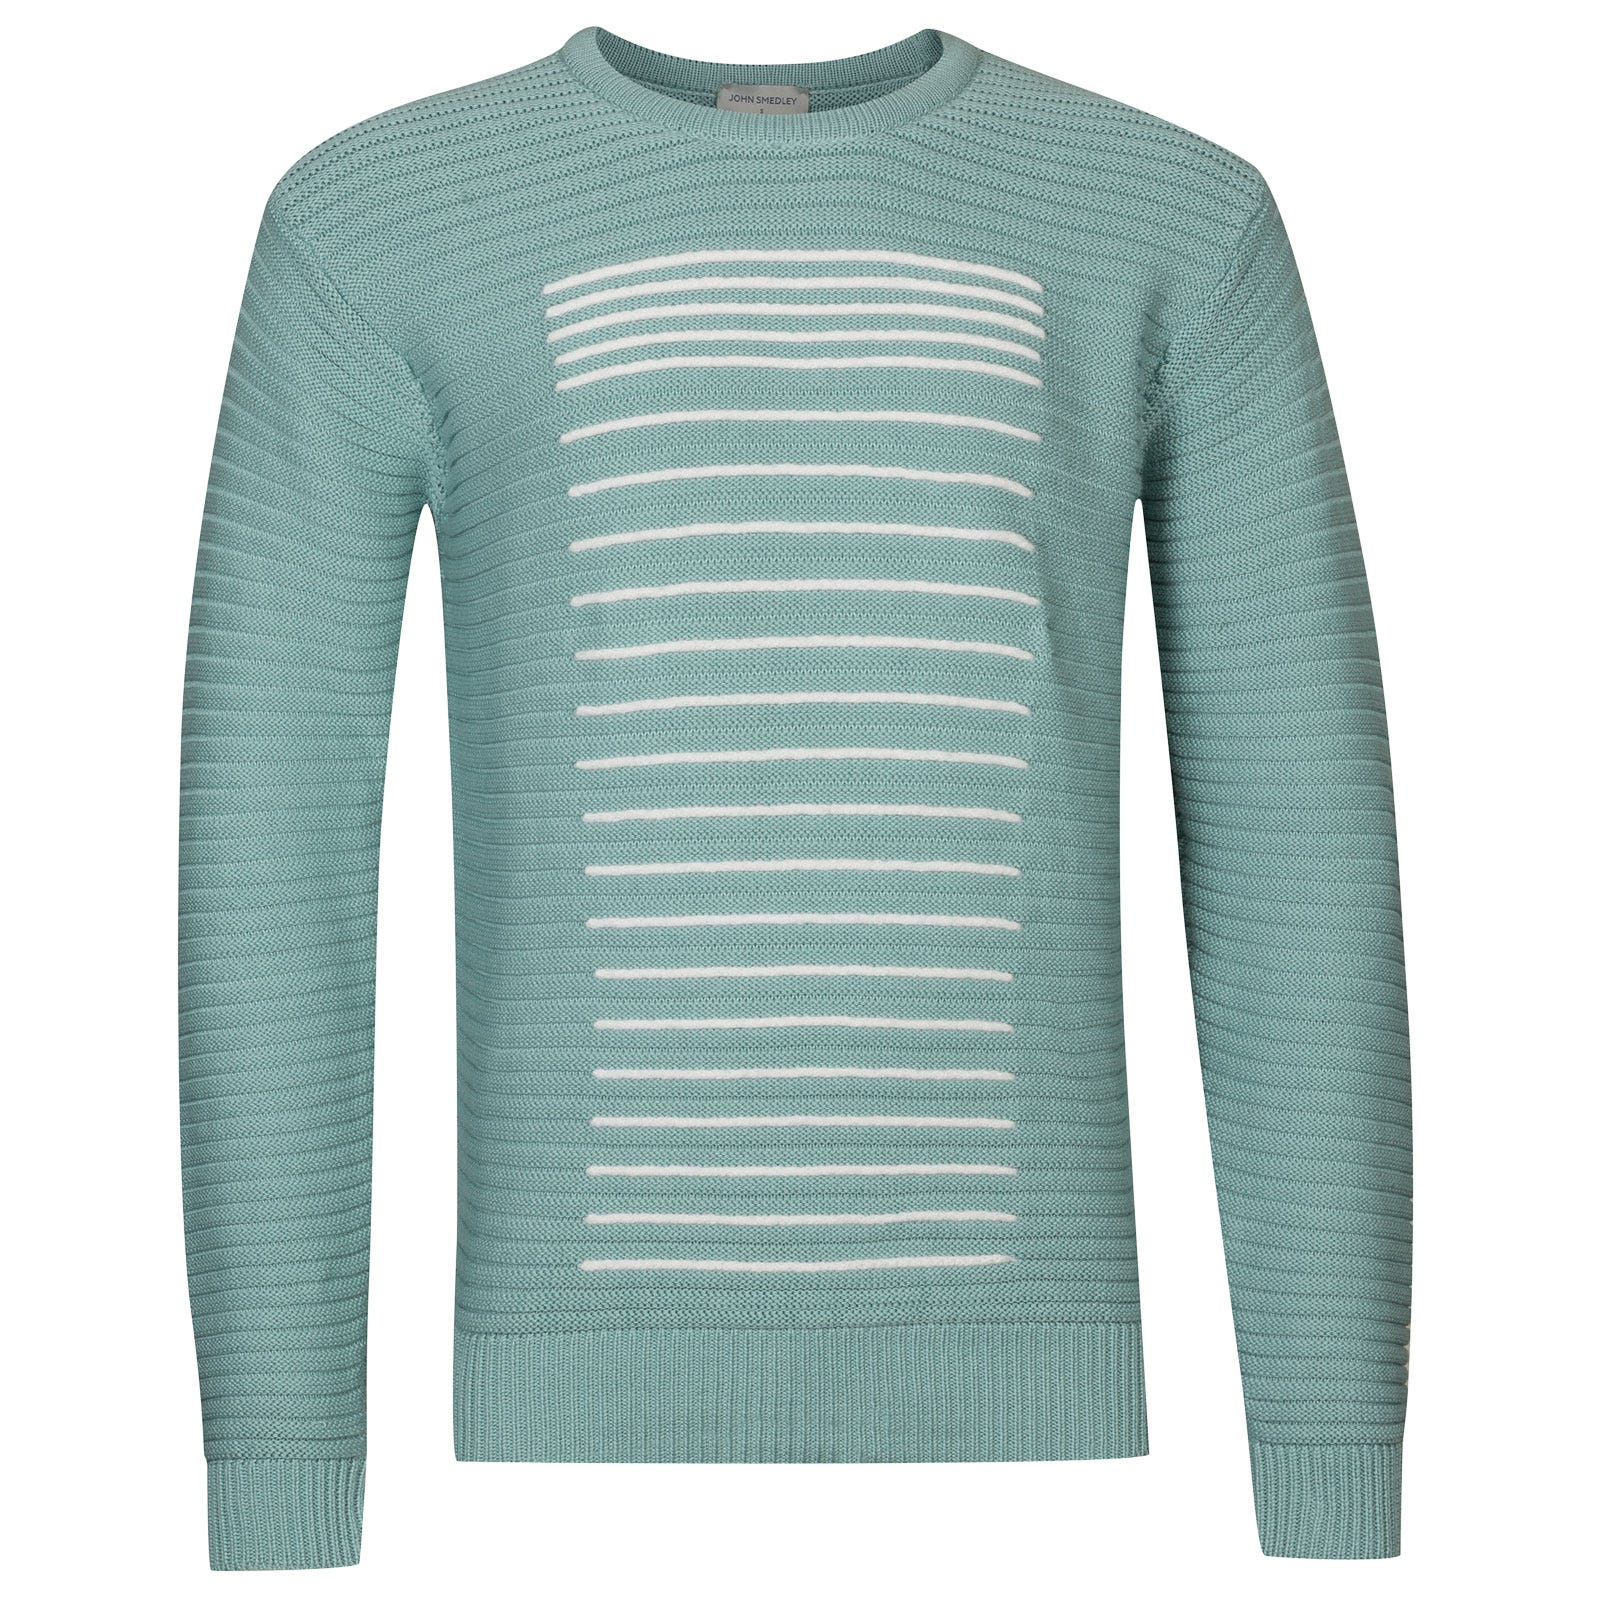 John Smedley Conder in Terrill Green/Snow White-Xl